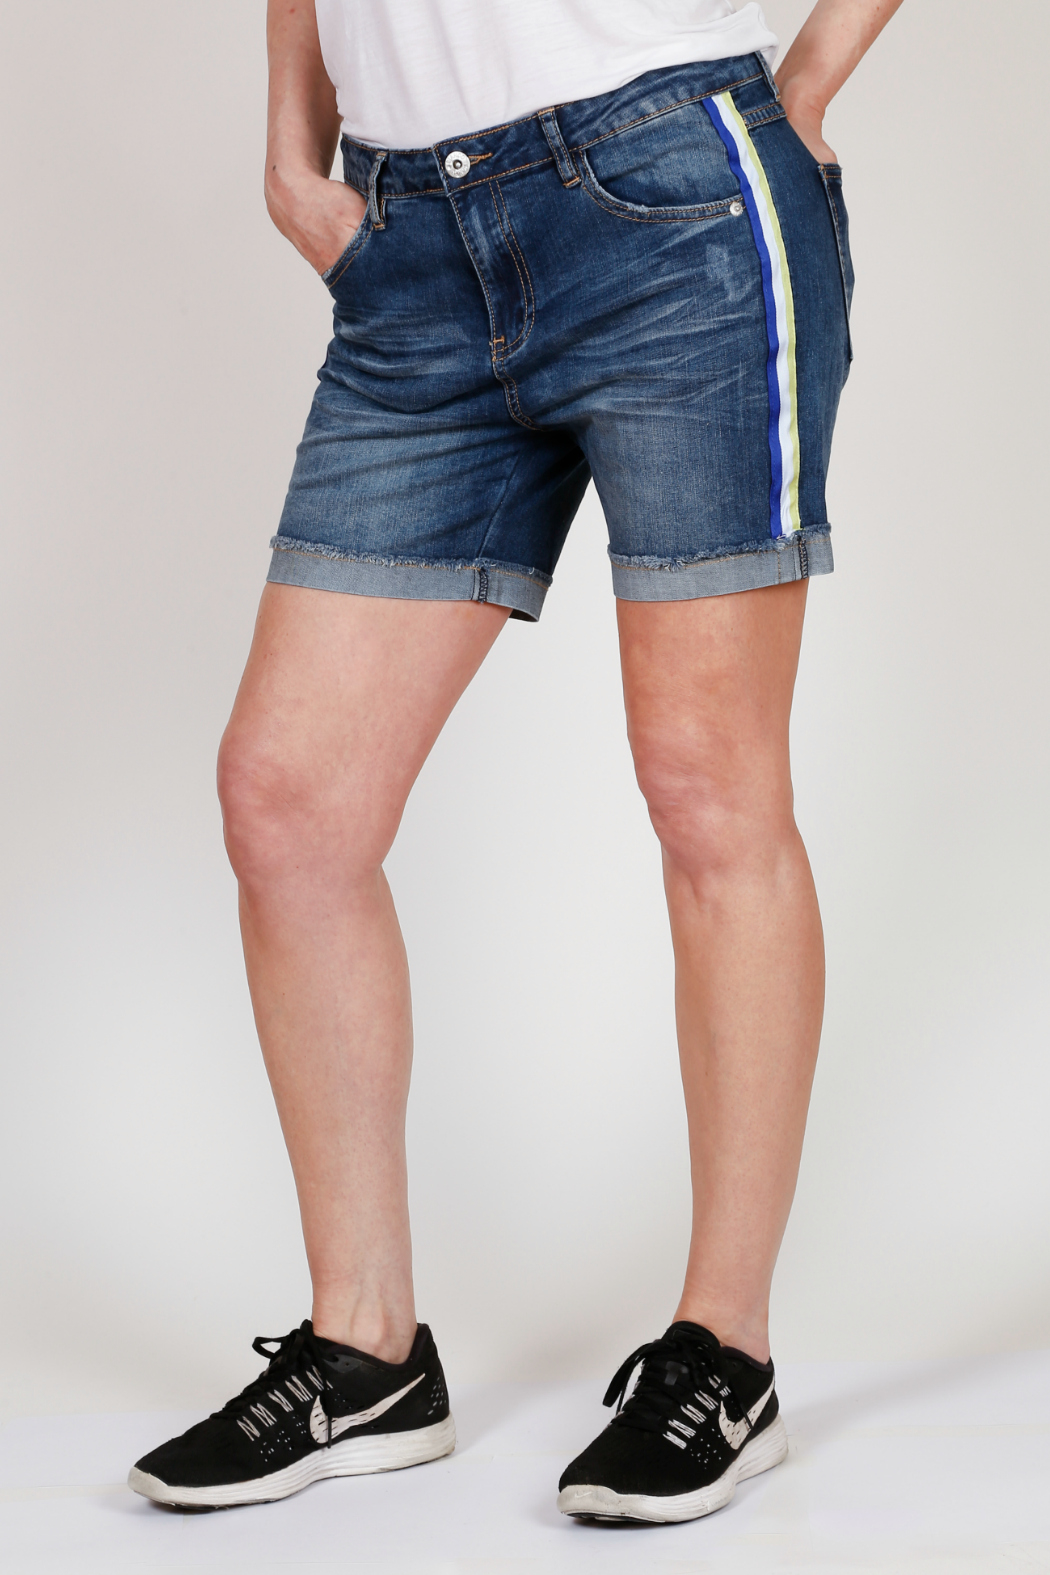 Bianco Jeans Striped Cuffed Denim Shorts - Front Full Image